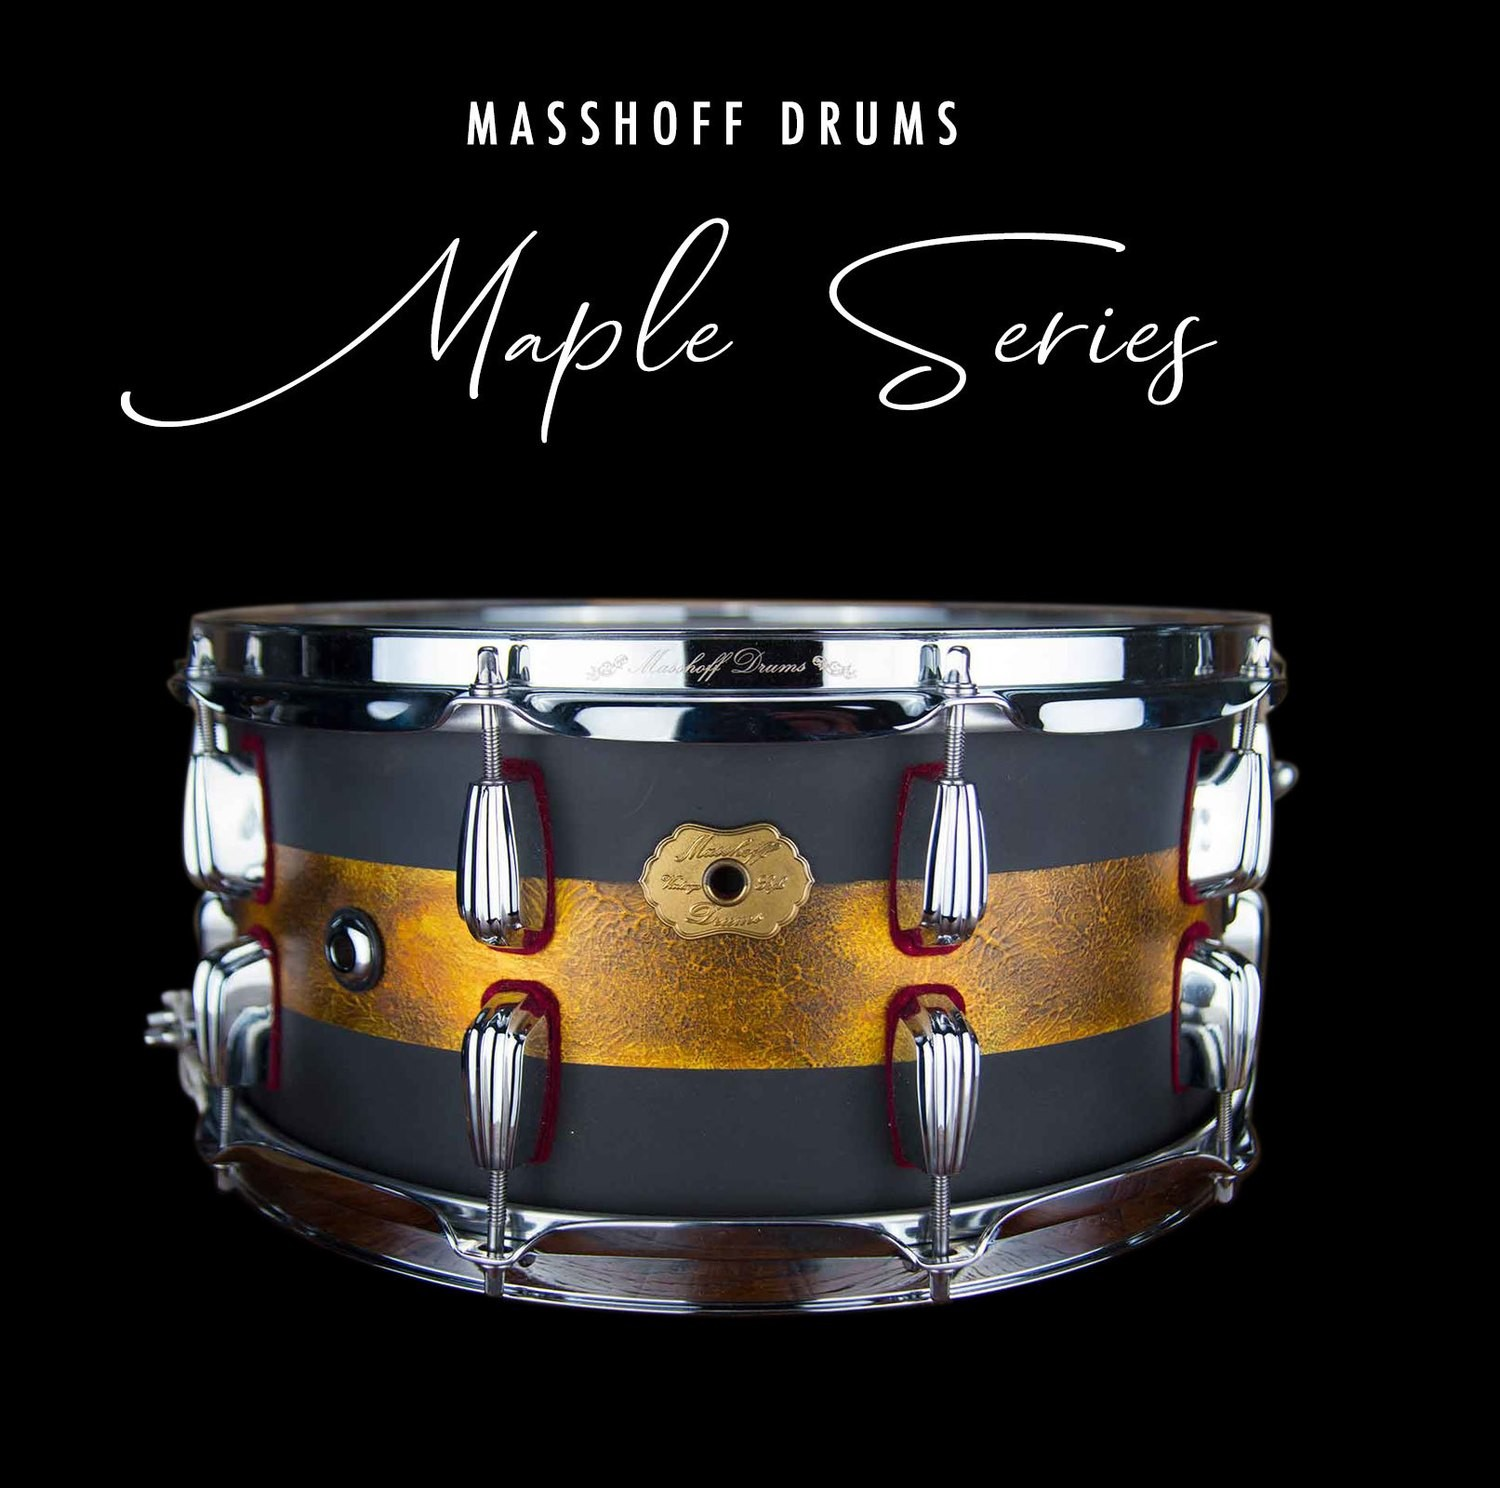 Masshoff Drums Maple Series / Avalon Duco